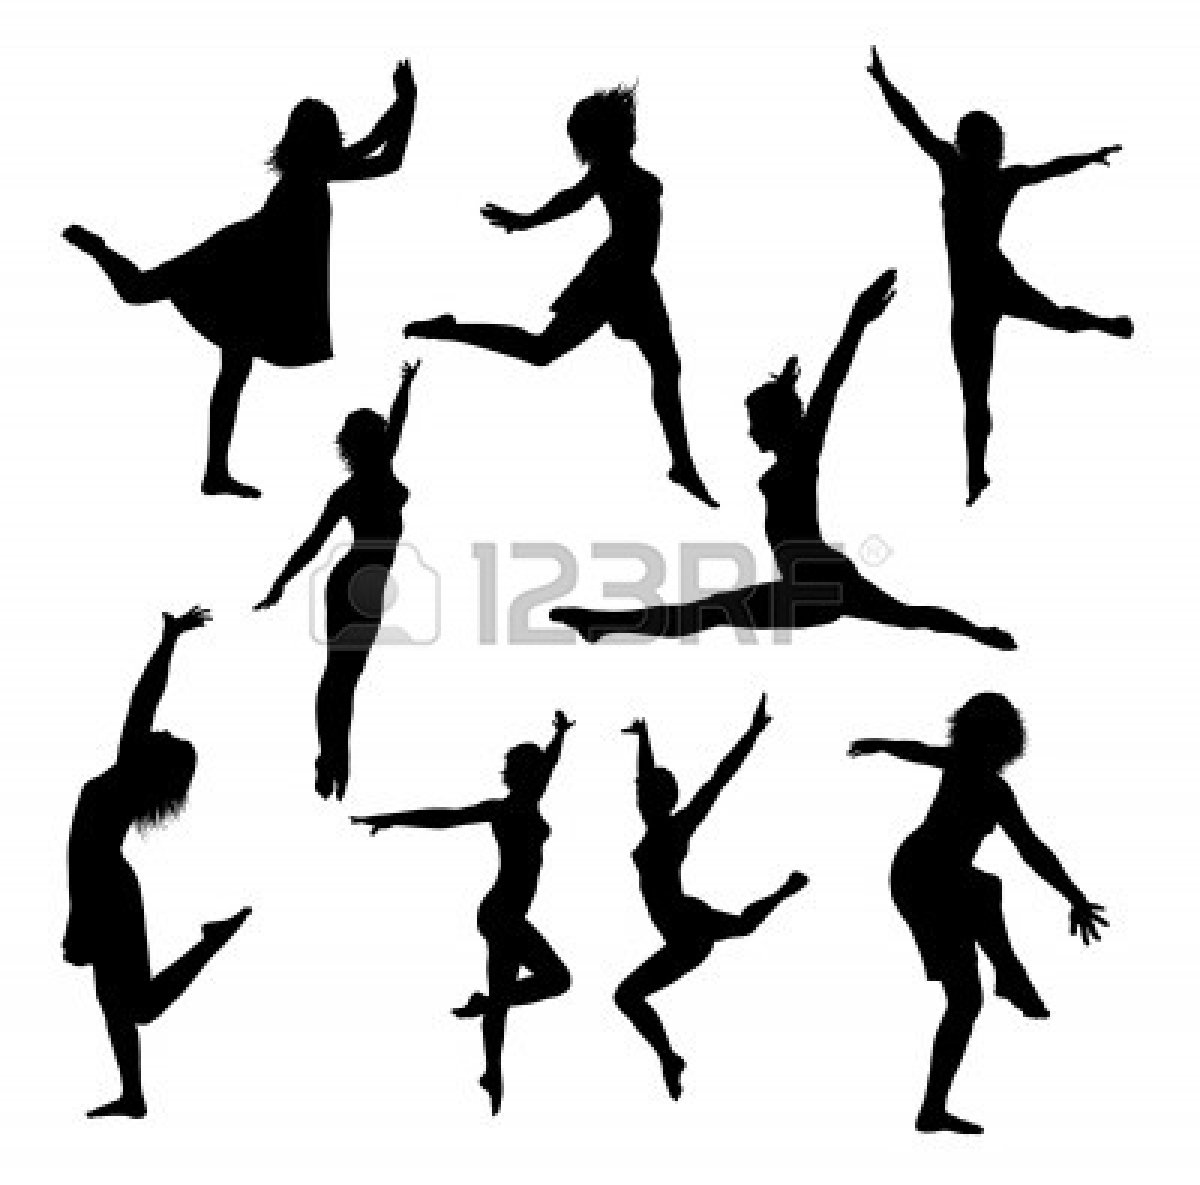 jazz dancer silhouette clip art at getdrawings com free for rh getdrawings com jazz band clipart jazz band clipart